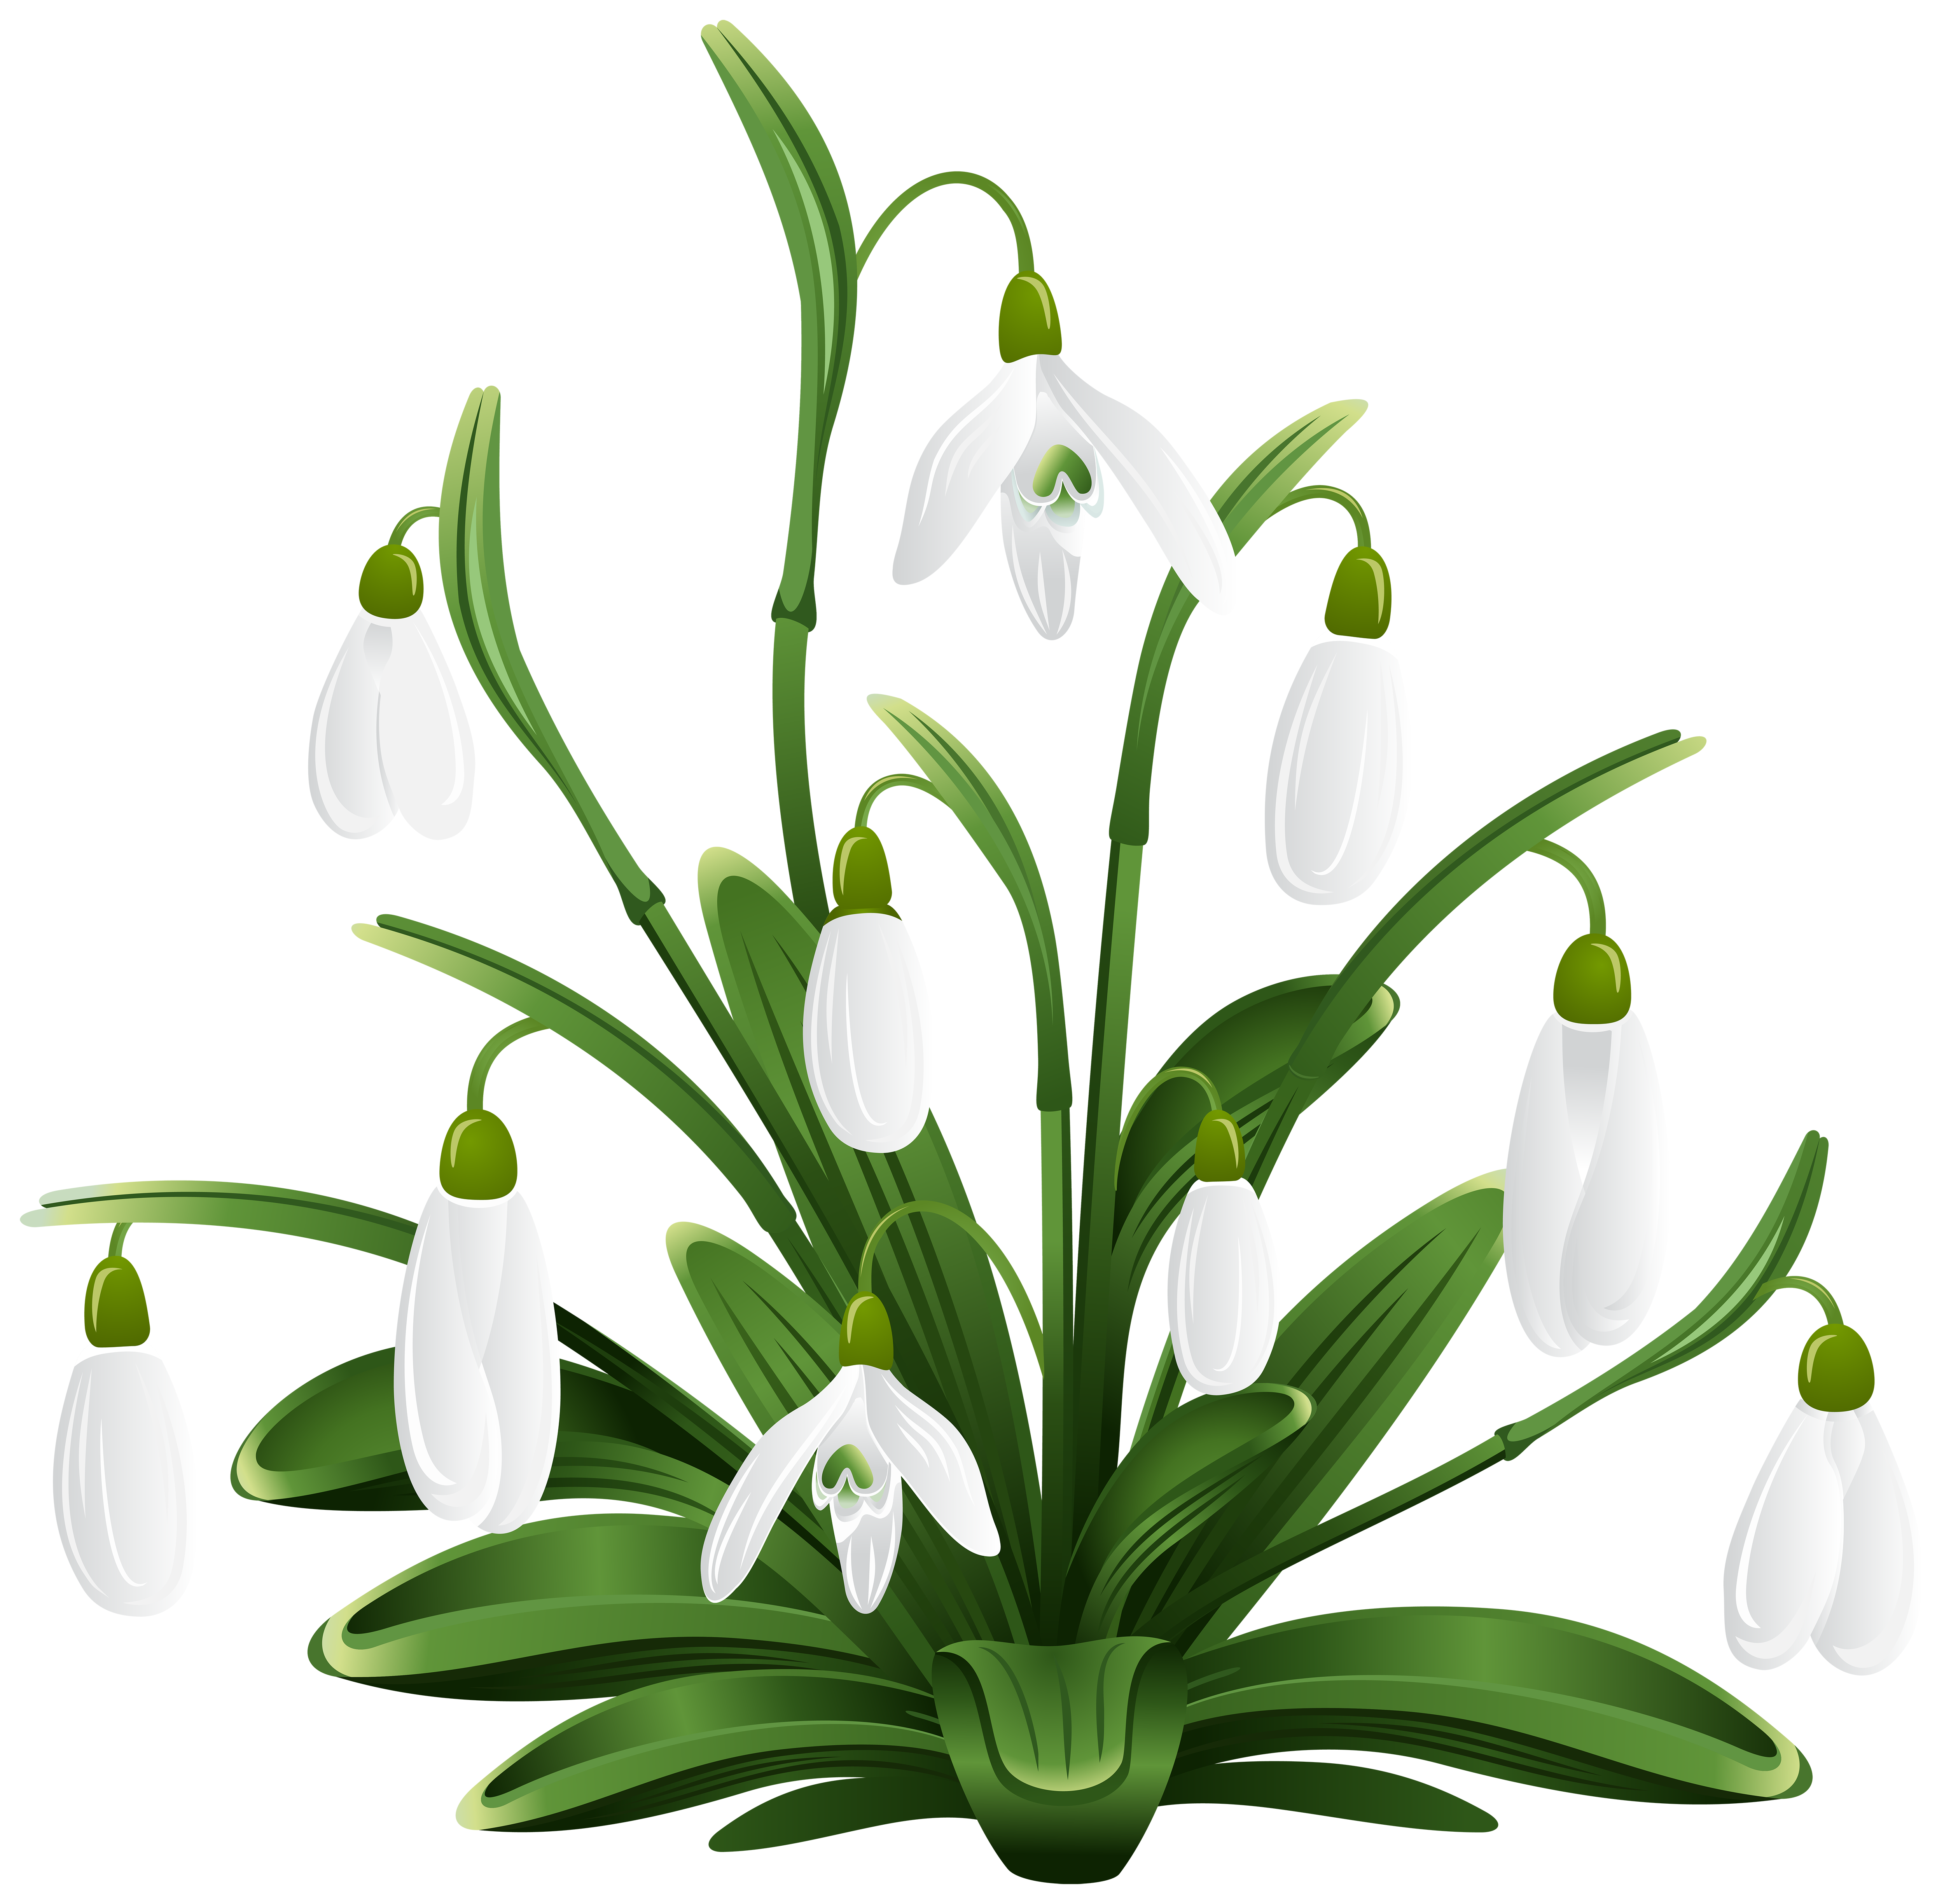 Snowdrops Transparent Png Clip Art Image Free Download Pencil Drawings Of Flowers Spring Art Flower Silhouette